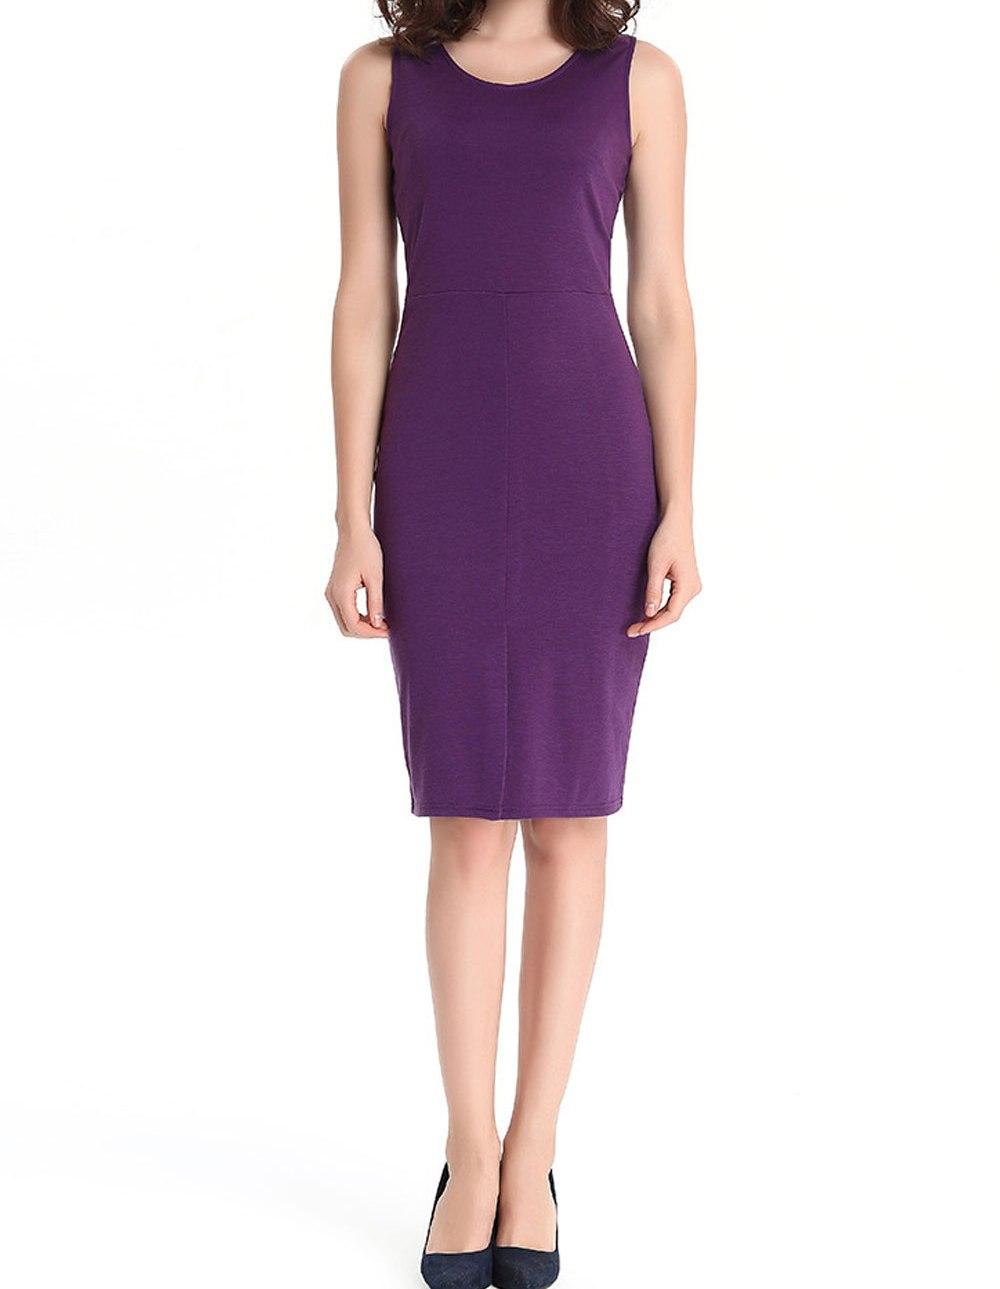 Women's Petite Ruched Knit Dress by Blair, Purple, Size M. Short Boat Dresses by Blair. Comes in Hyacinth, Size P-M. Ruching at the waist creates a flattering silhouette and easy fit. Finished with a flowing skirt for easy movement.